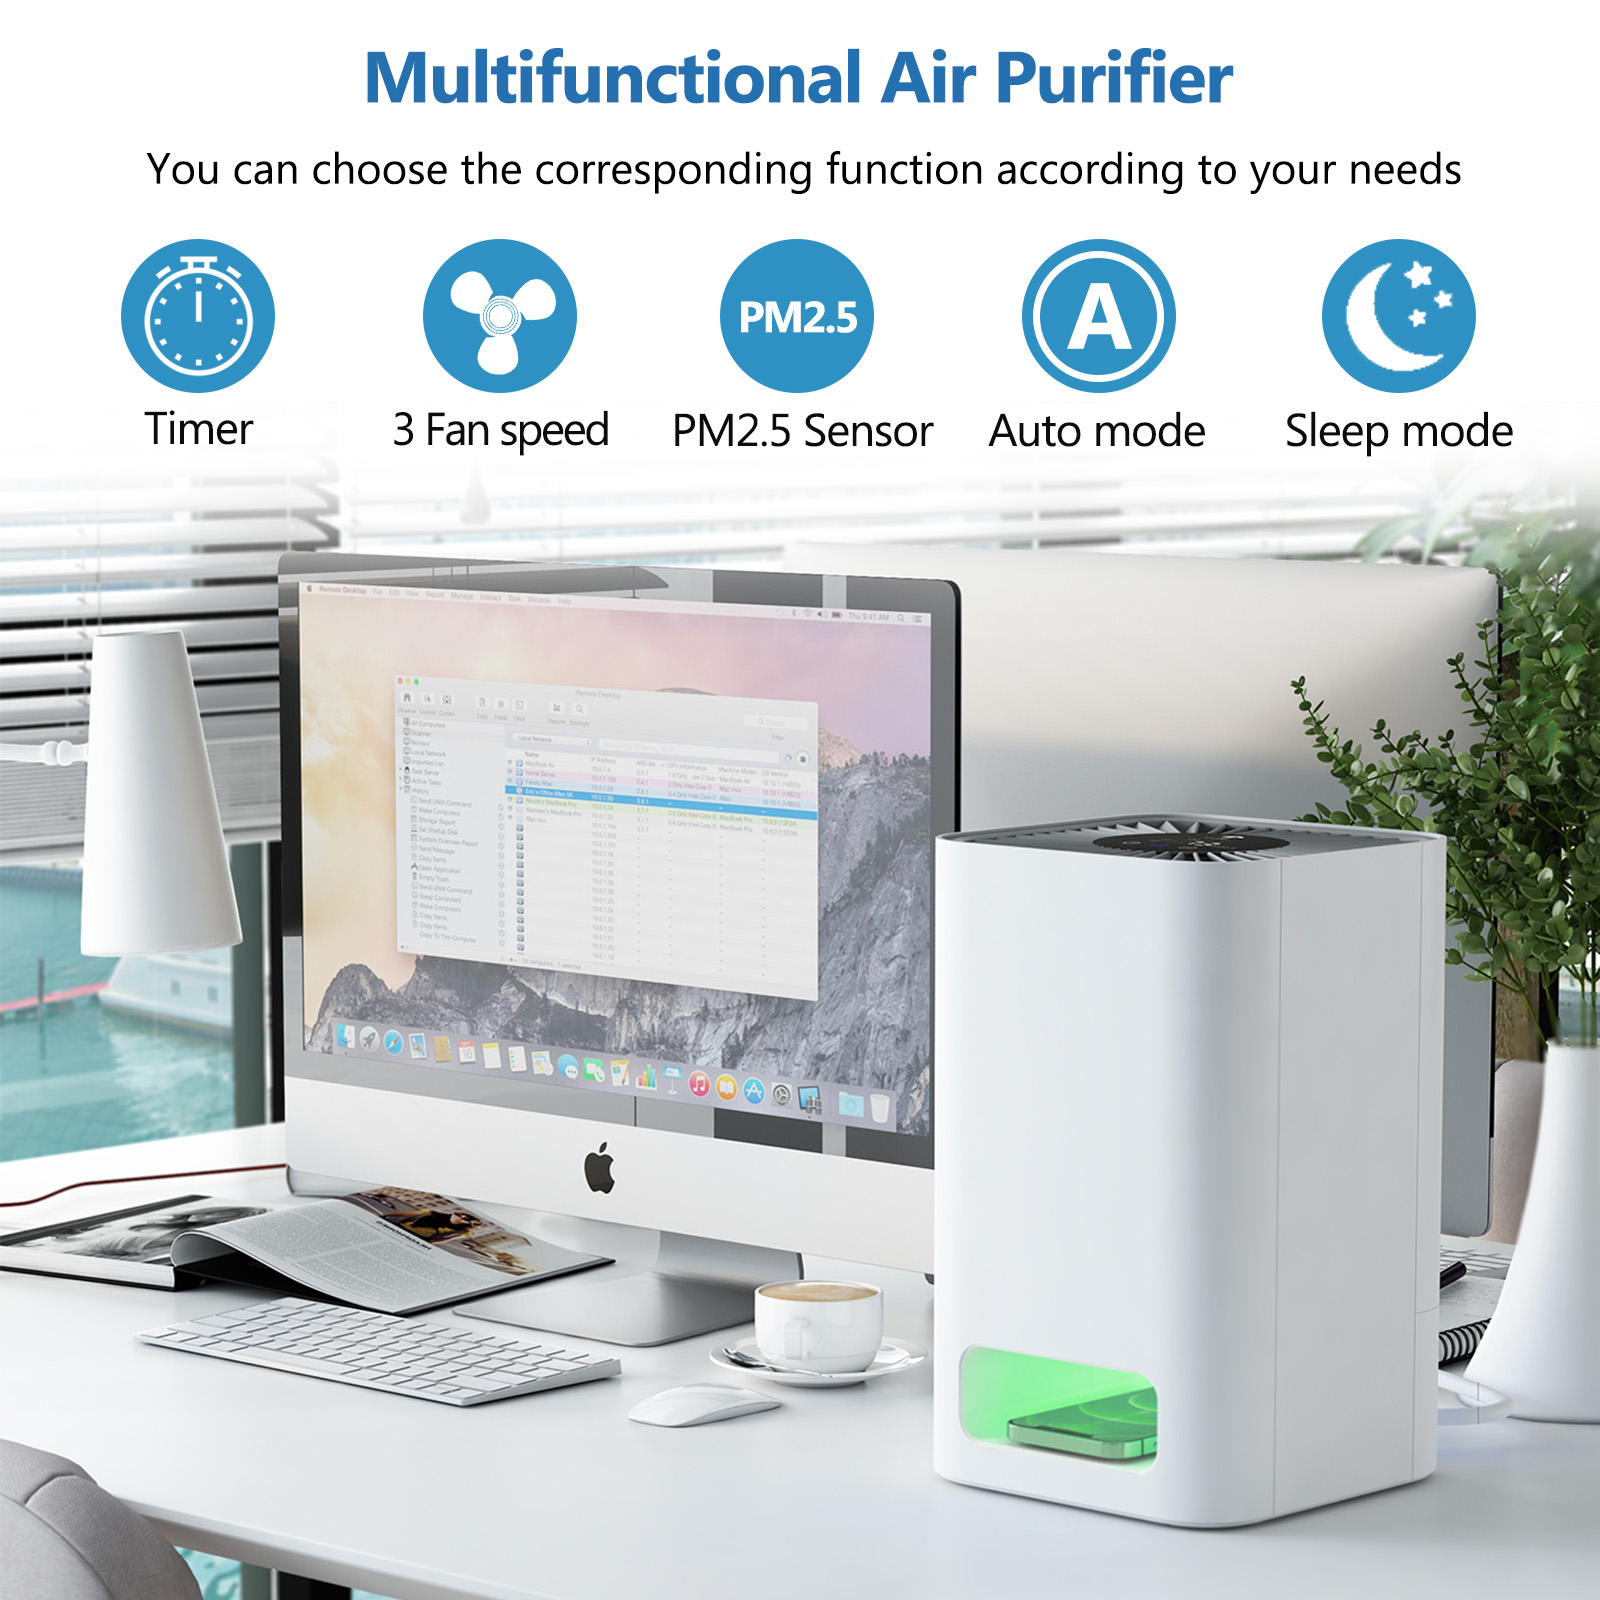 AM-160B UV Air Purifier with Multi Function Touch Control Panel and Air Quality Monitoring